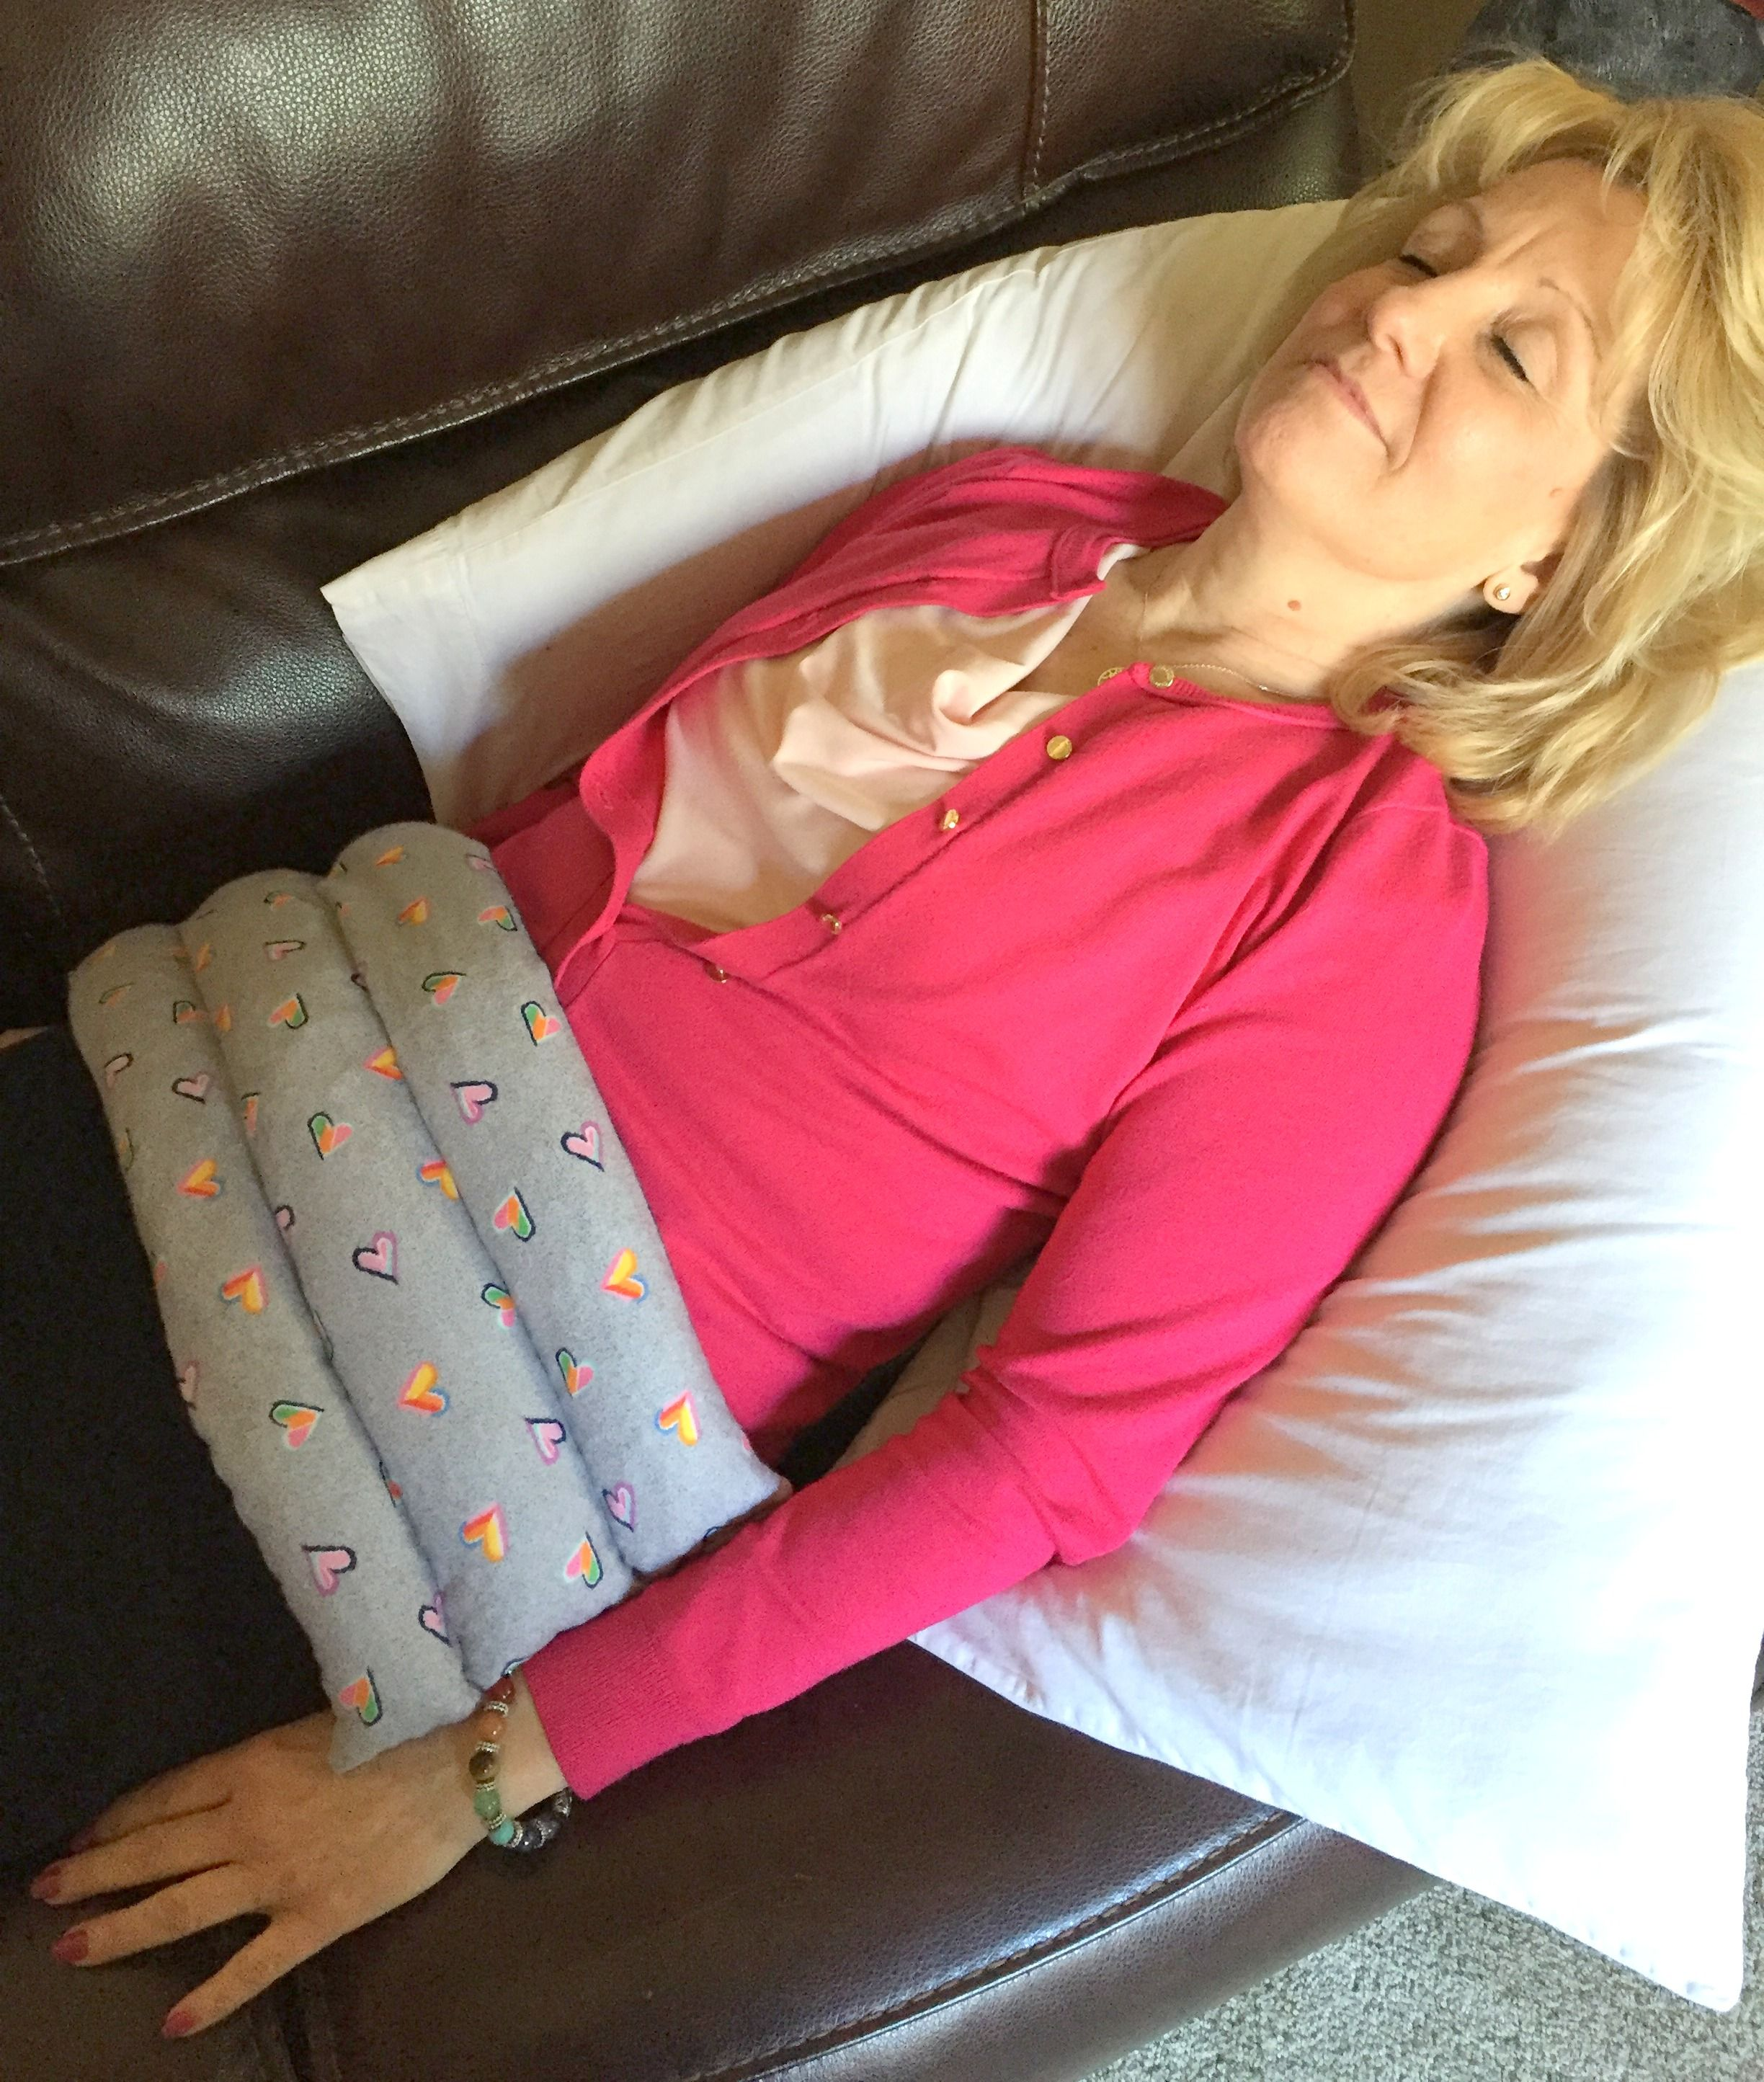 XL Wrap Heat up and use for menstrual cramps, upset